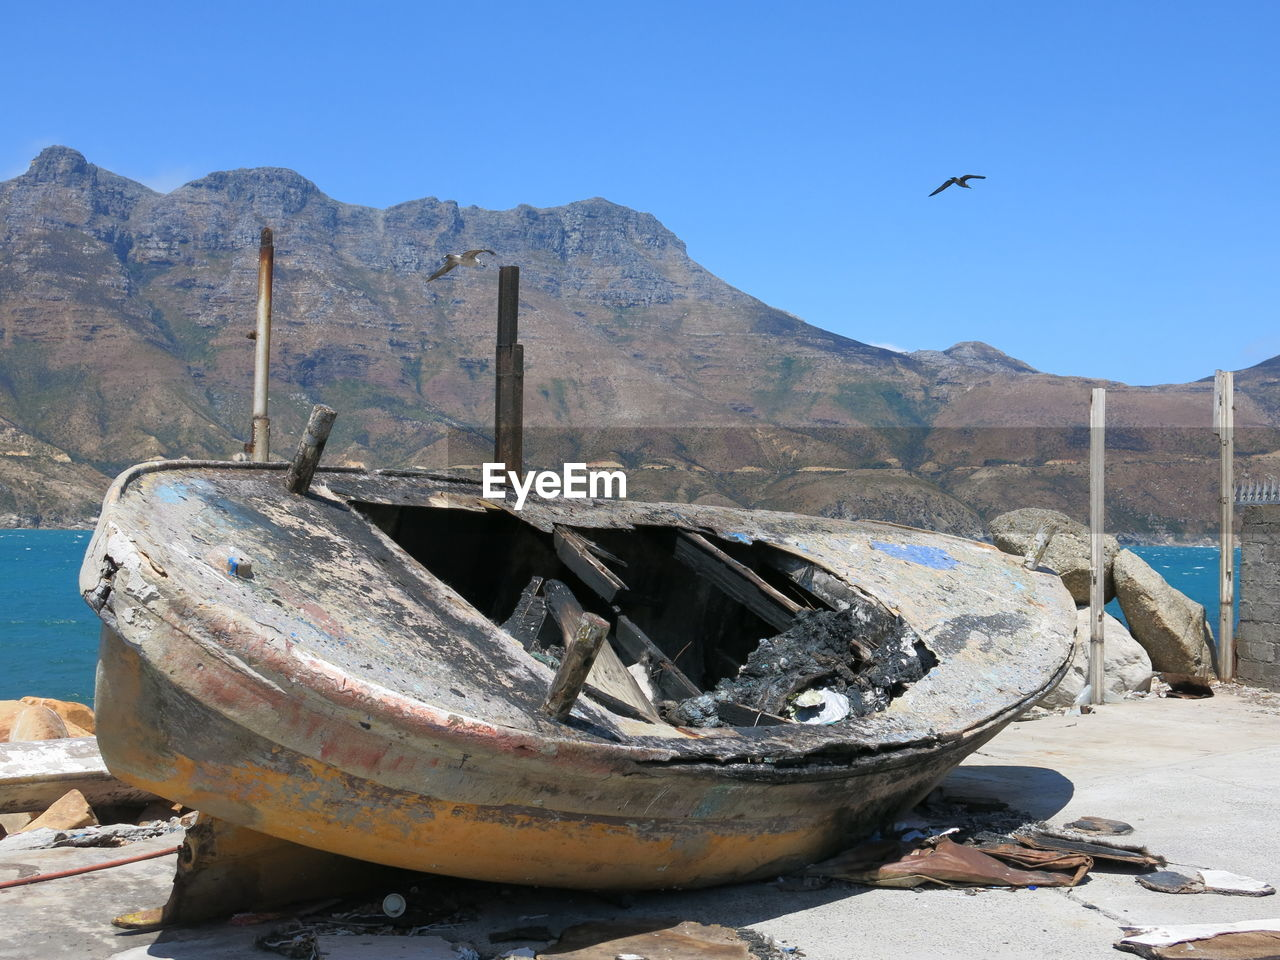 Abandoned Boat By Mountain Against Clear Sky